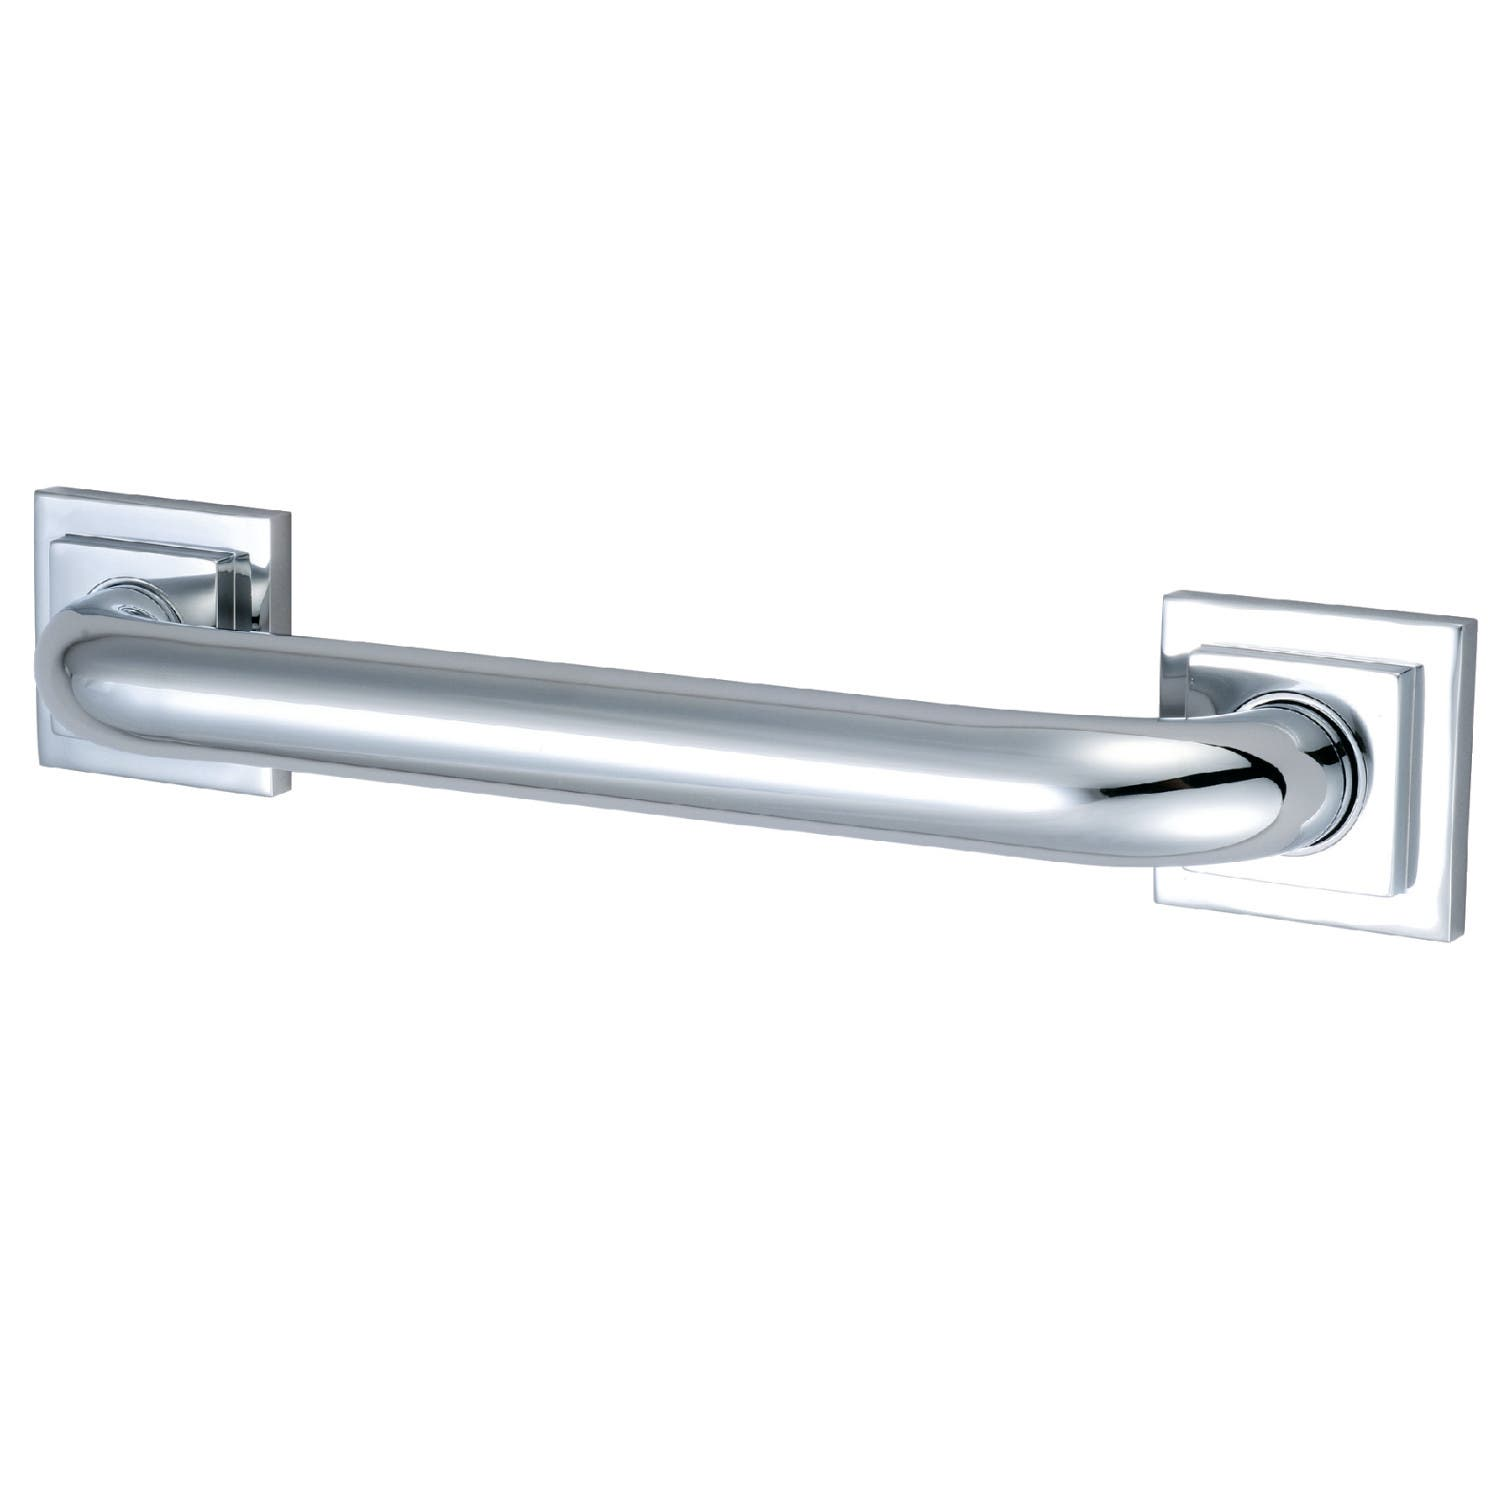 "Kingston Brass DR614361 Claremont 36"" Grab Bar, Polished Chrome"